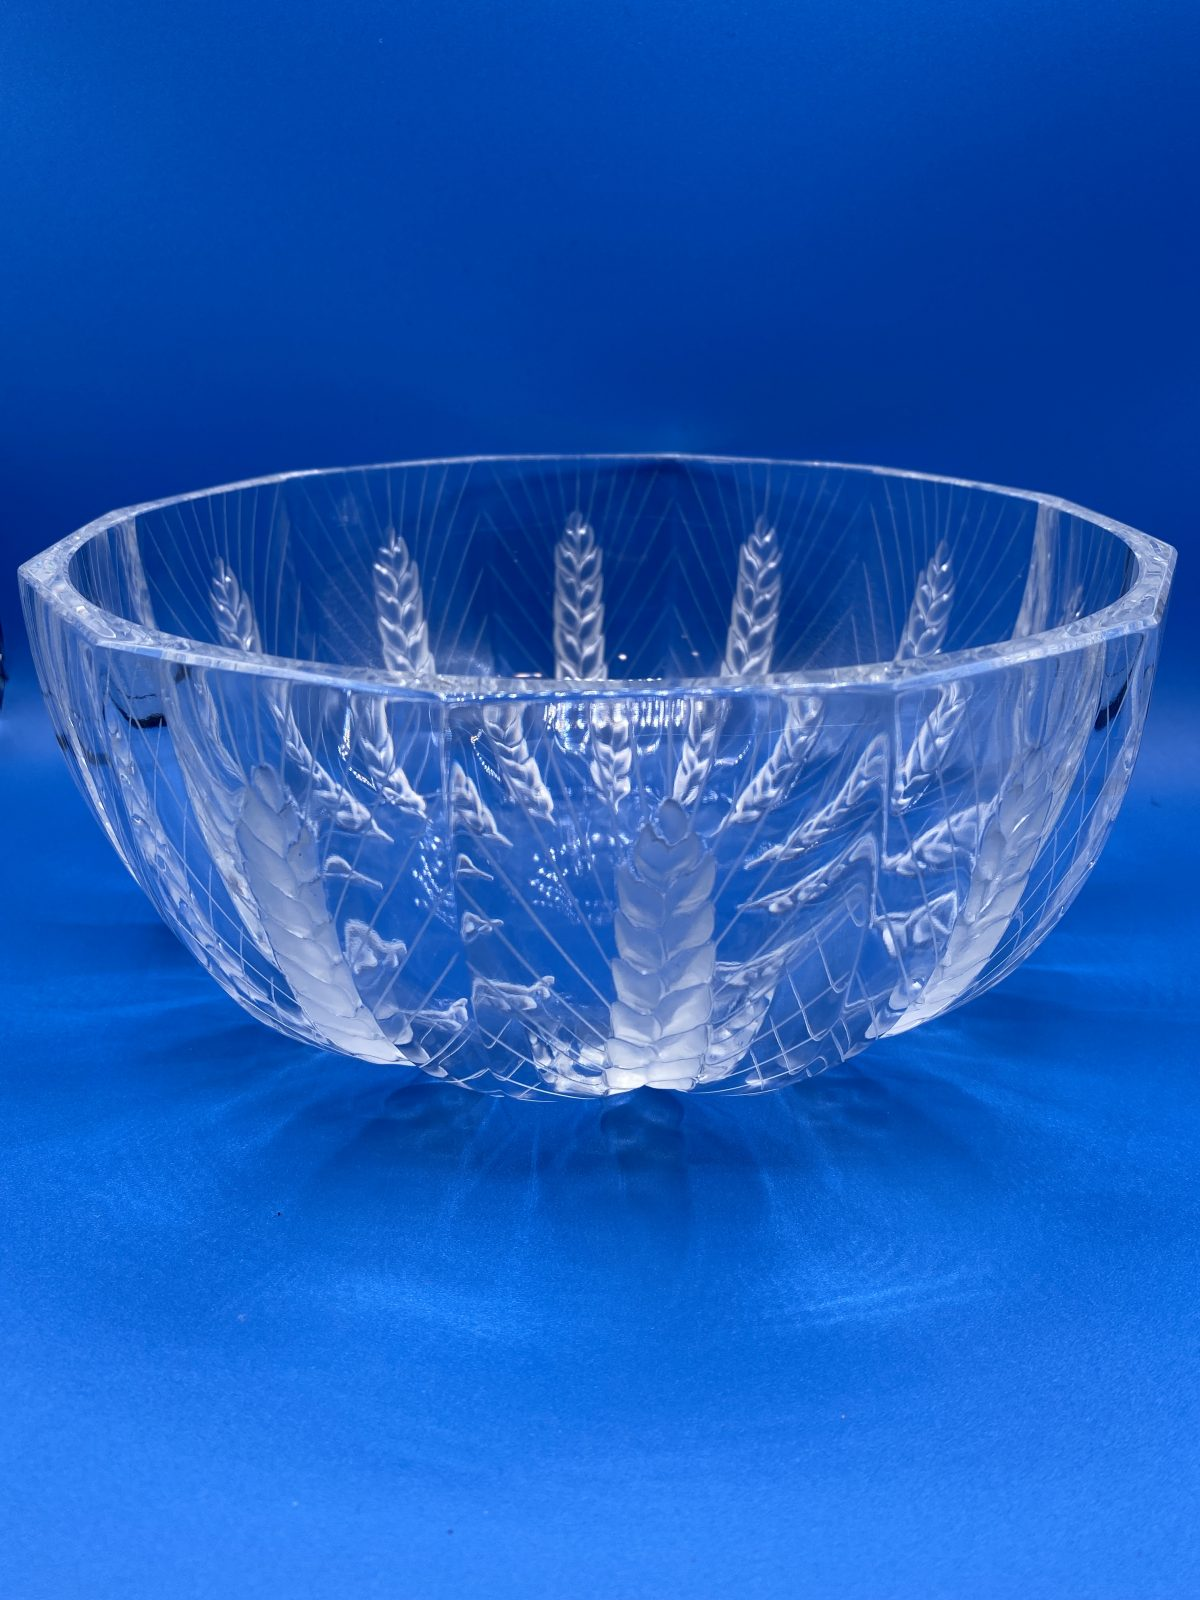 G1 - A Large & Heavy Lalique Bowl with Wheatear pattern, by Marie-Claude Lalique, c 1990, signed to base.  £395